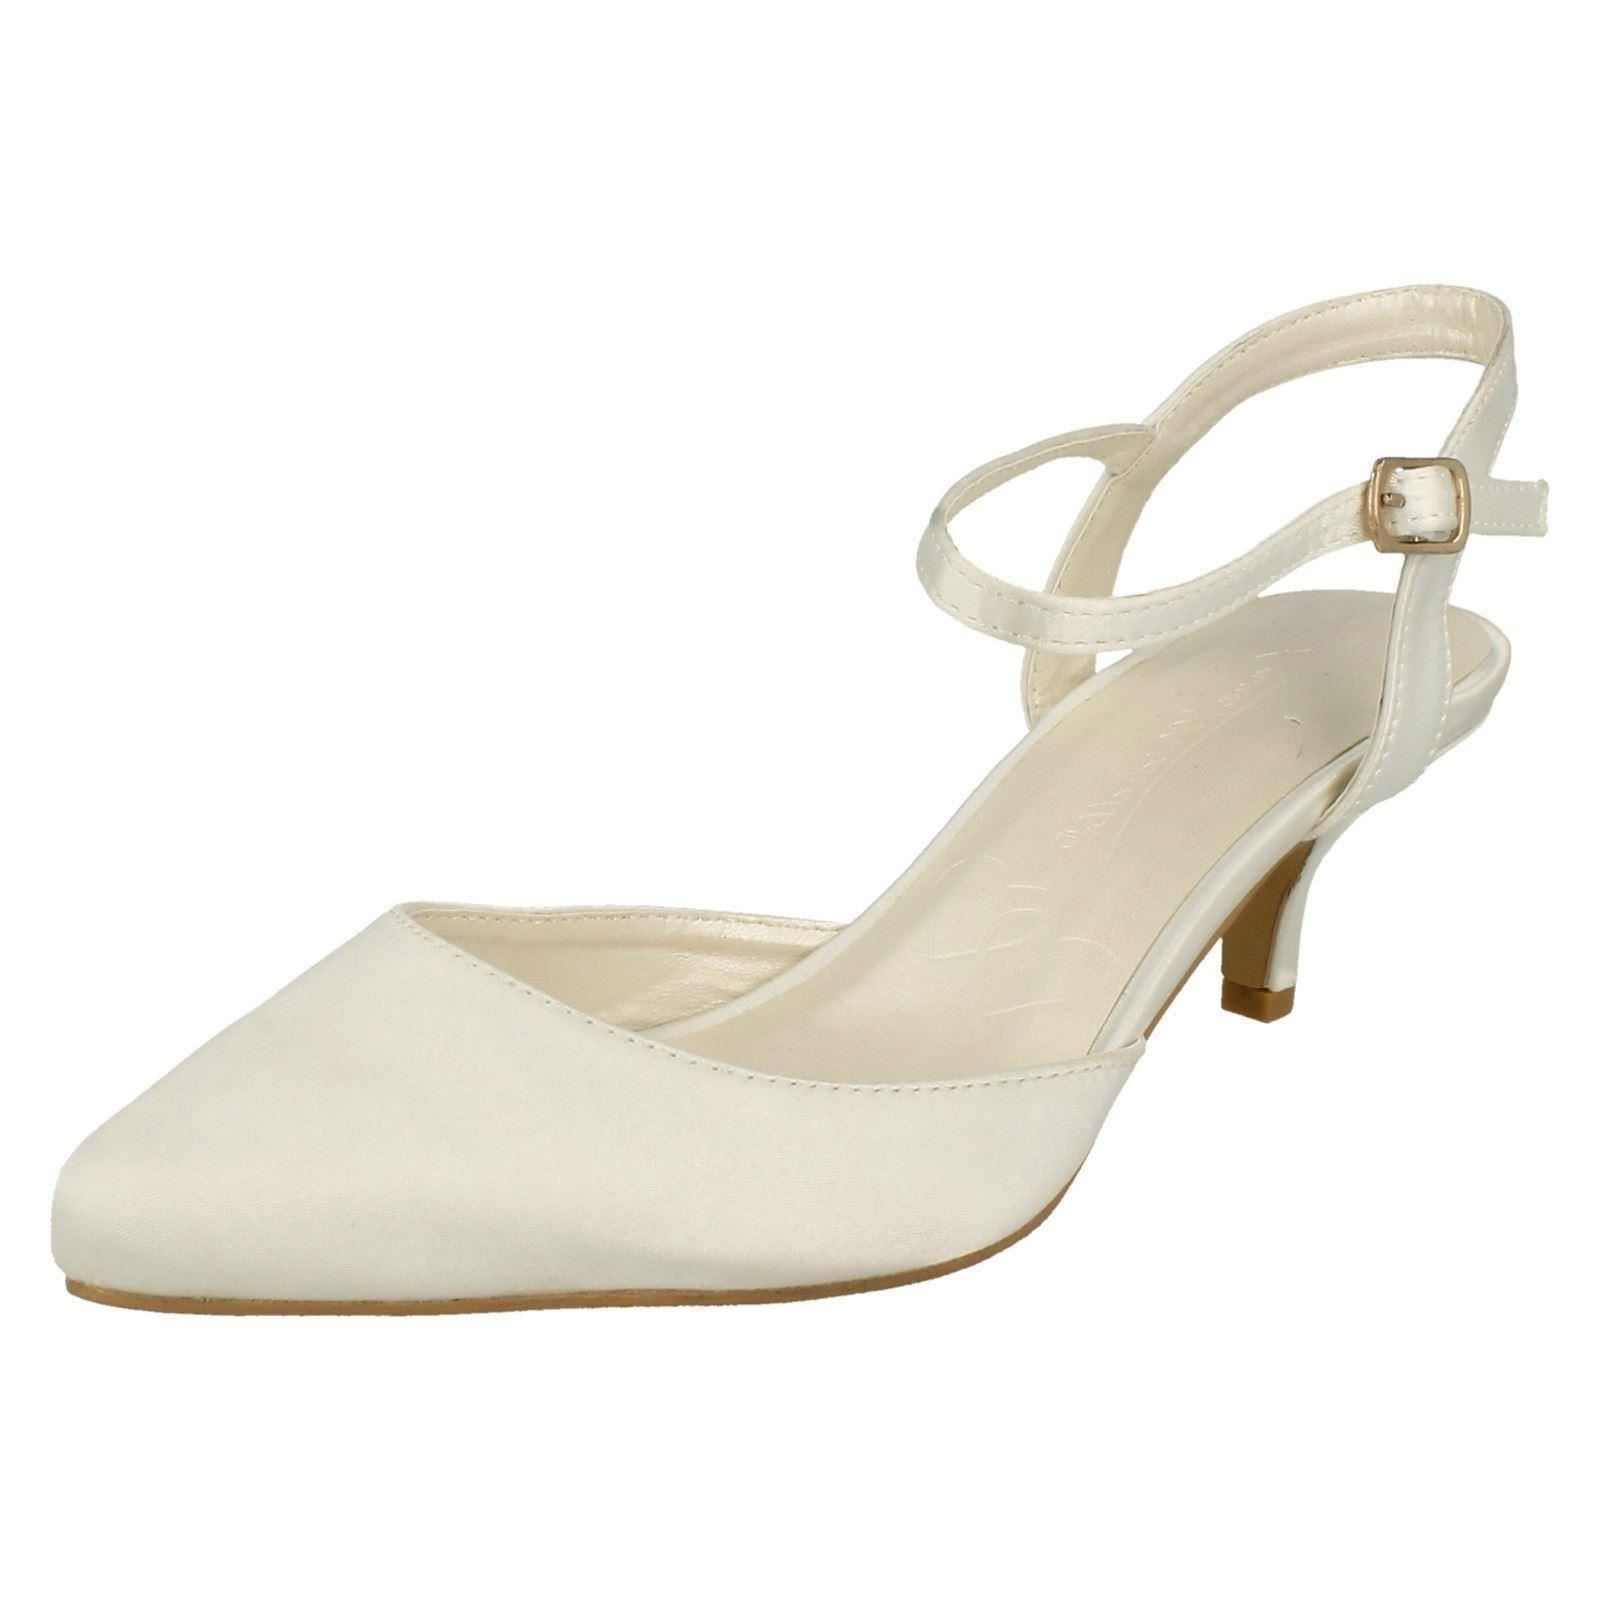 Anne Michelle F9R752 Ladies Ivory Satin Kitten Heel Wedding shoes (R13B)